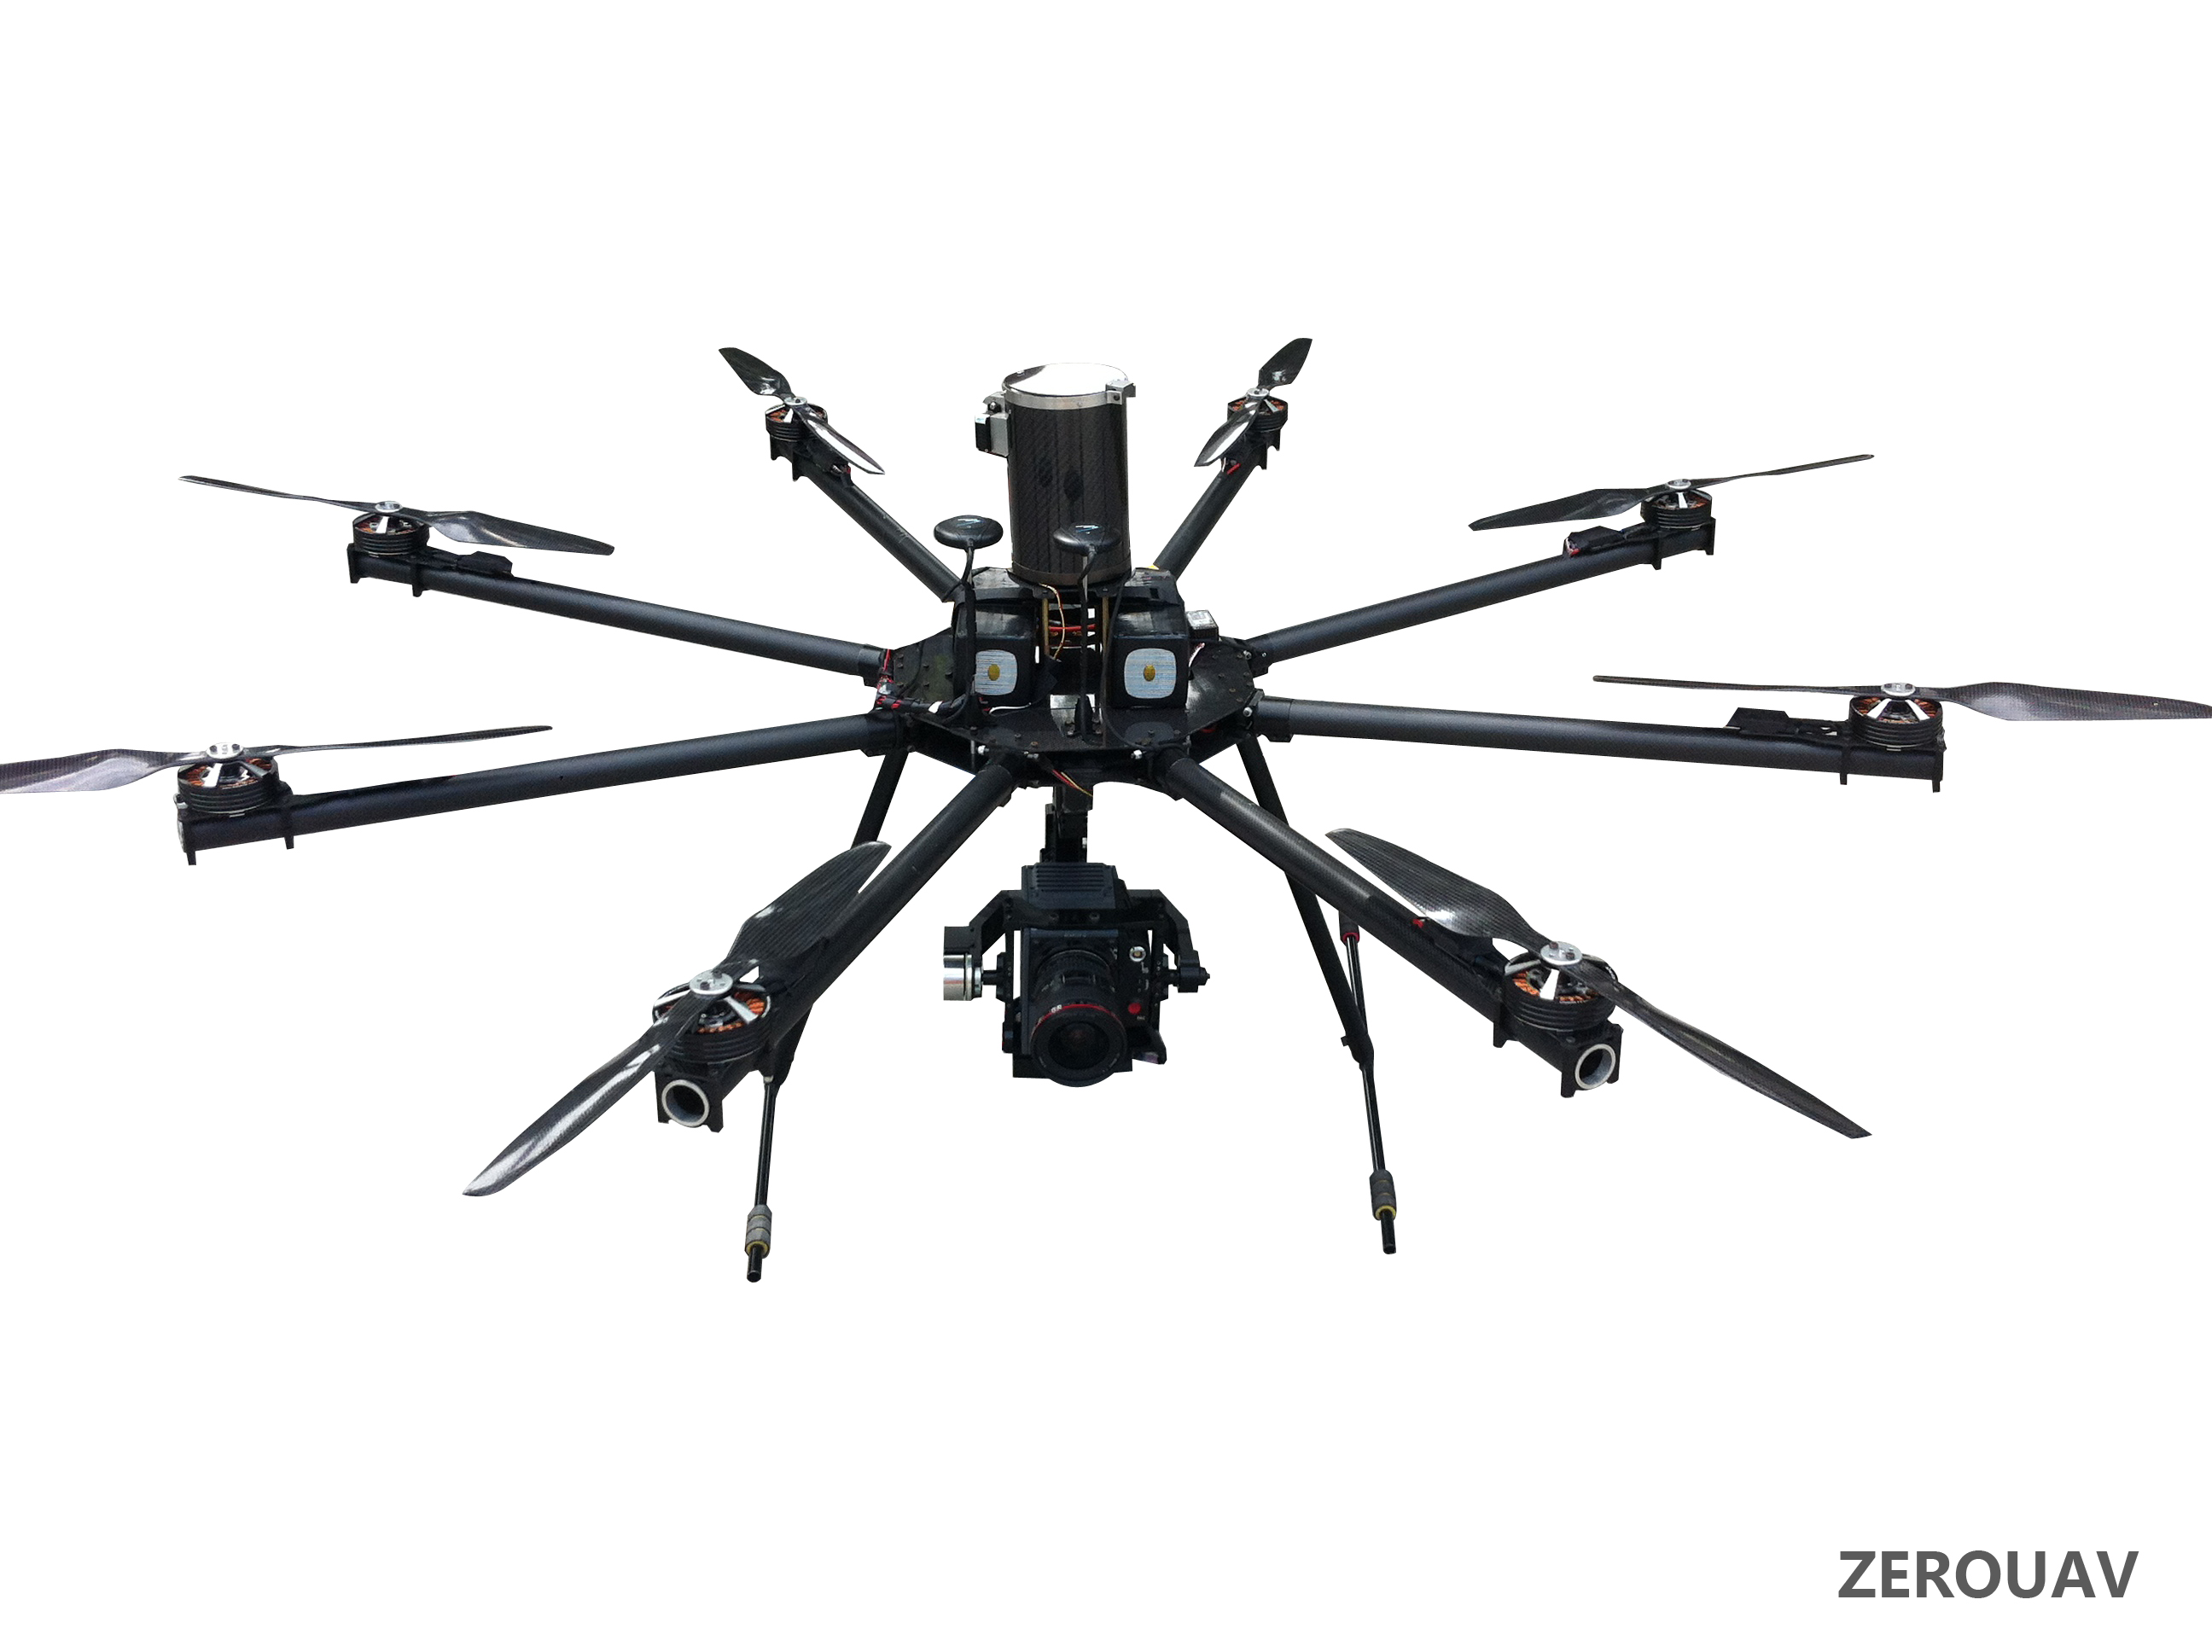 Октокоптер для аэровидеофотосъемки ZeroUAV E-EPIC aerial machine Ready To Fly System